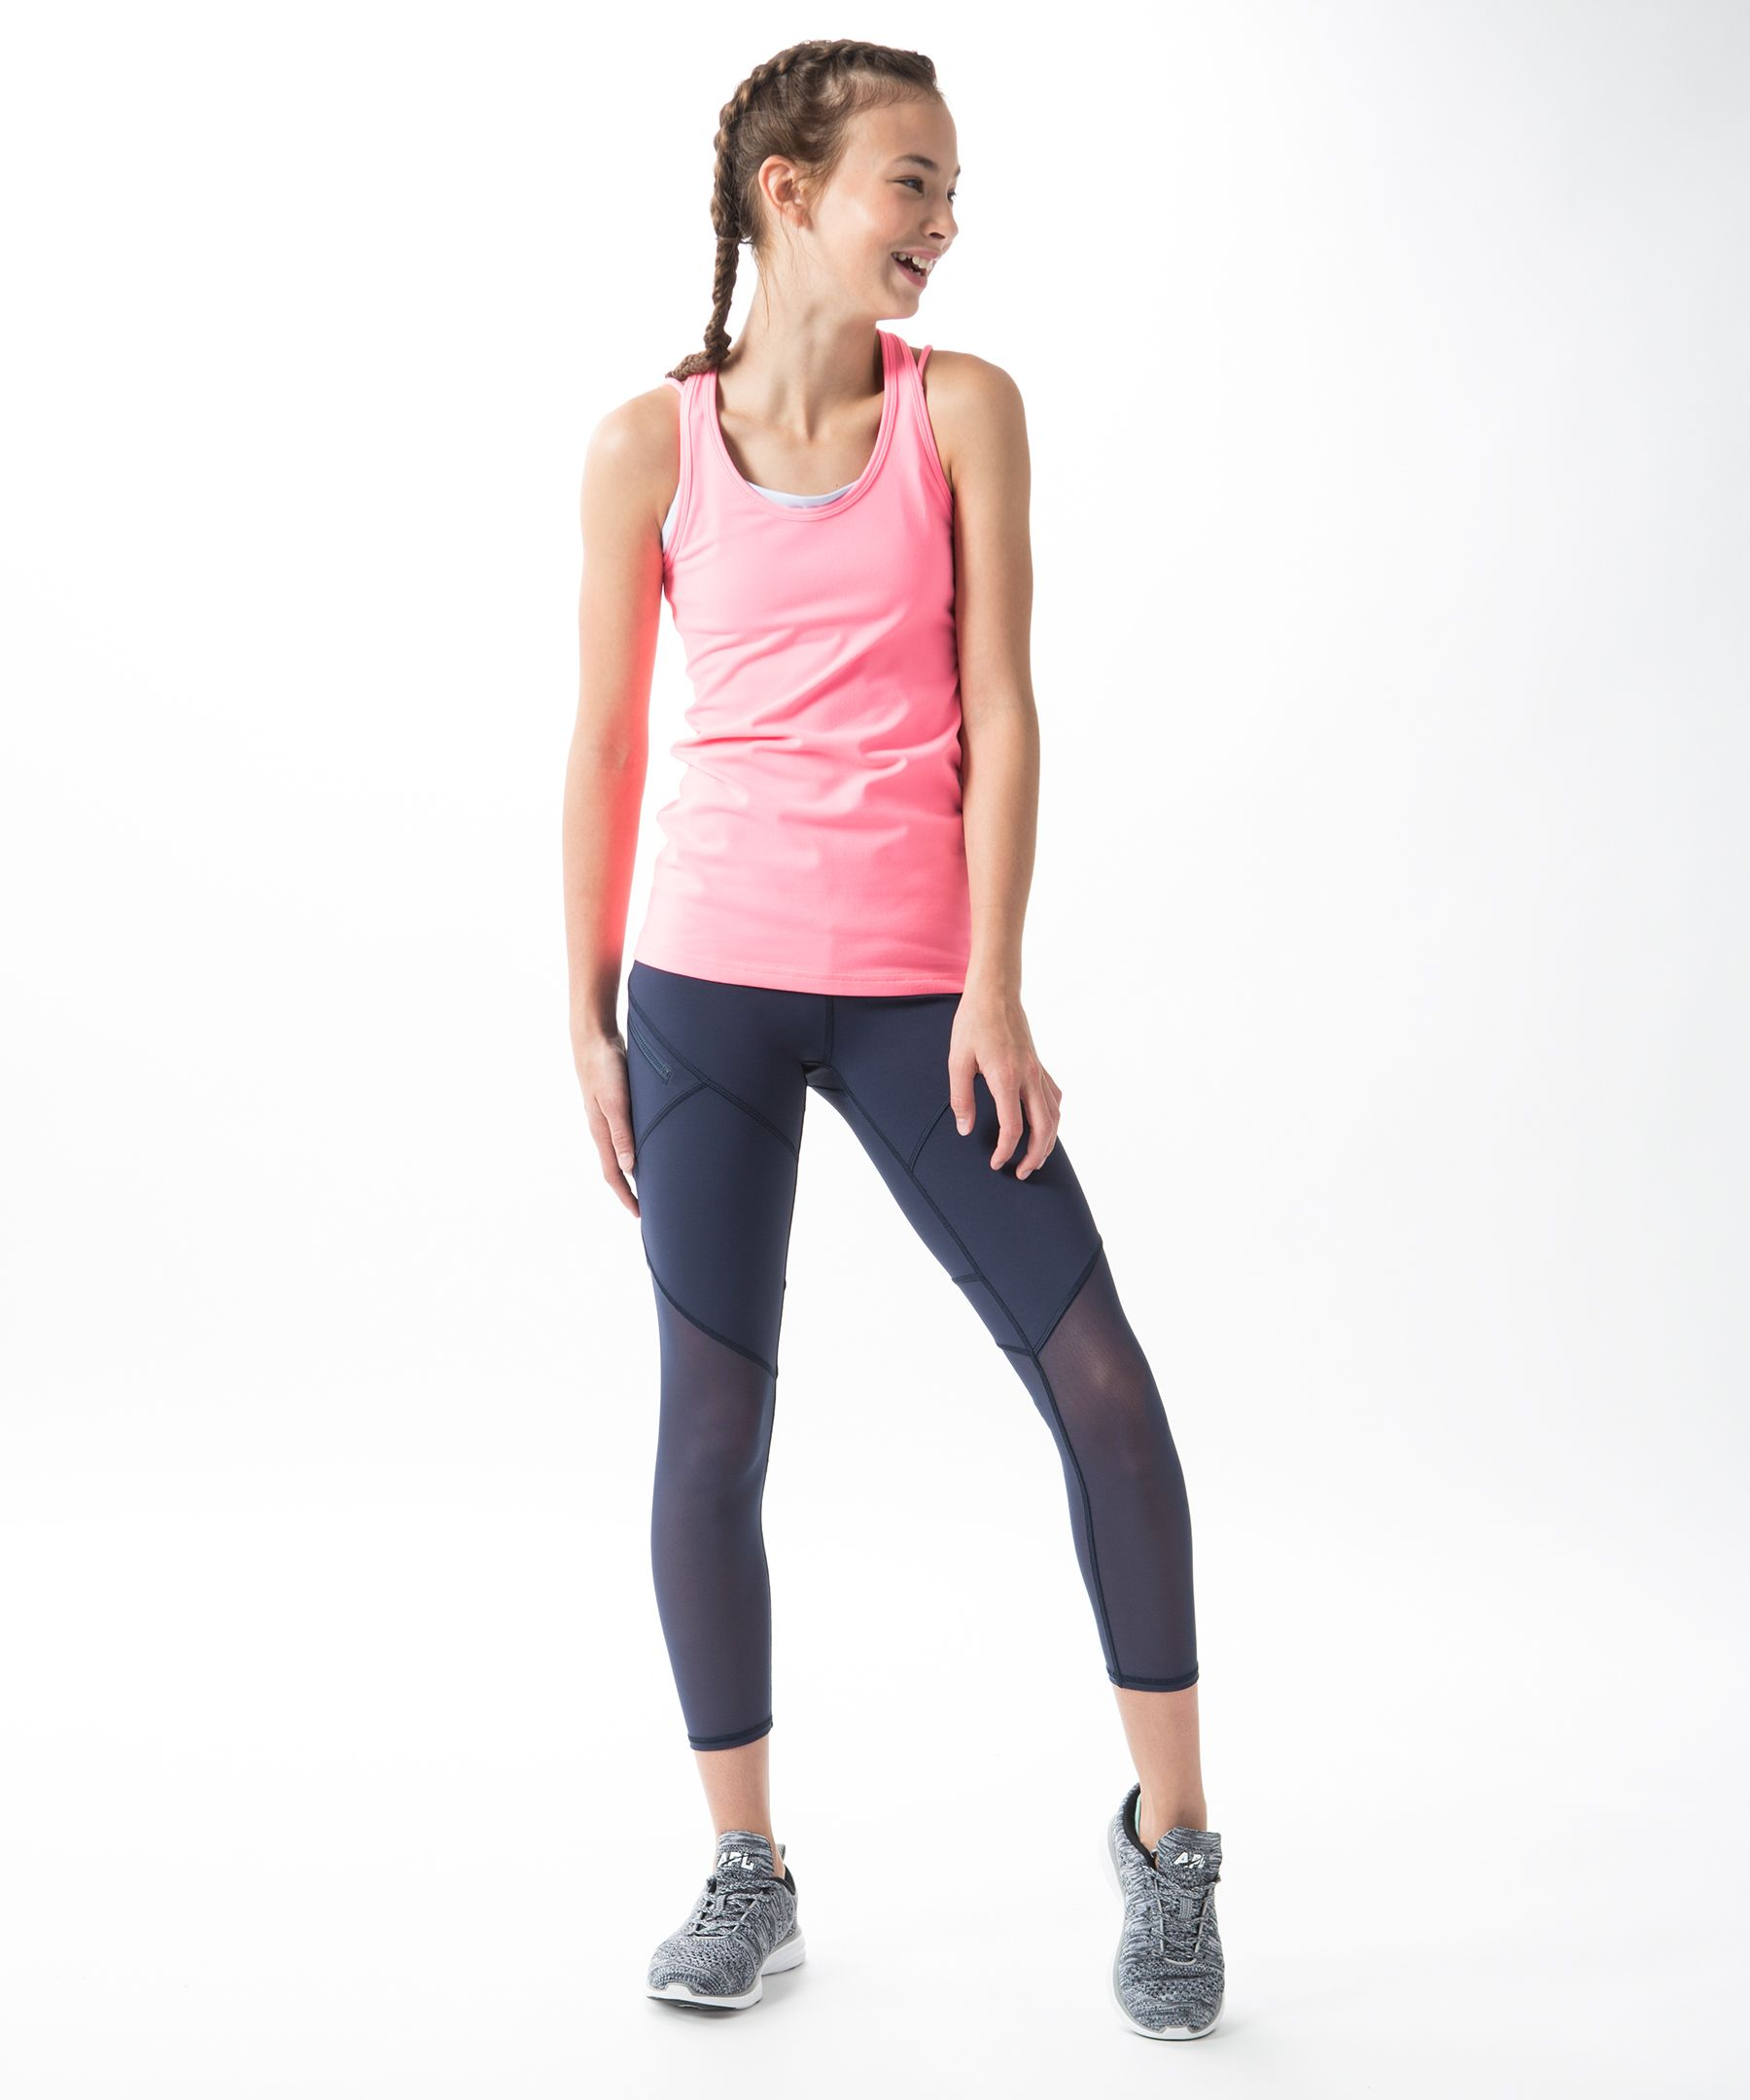 Clearly Breezy Pant   Girls New by Lululemon